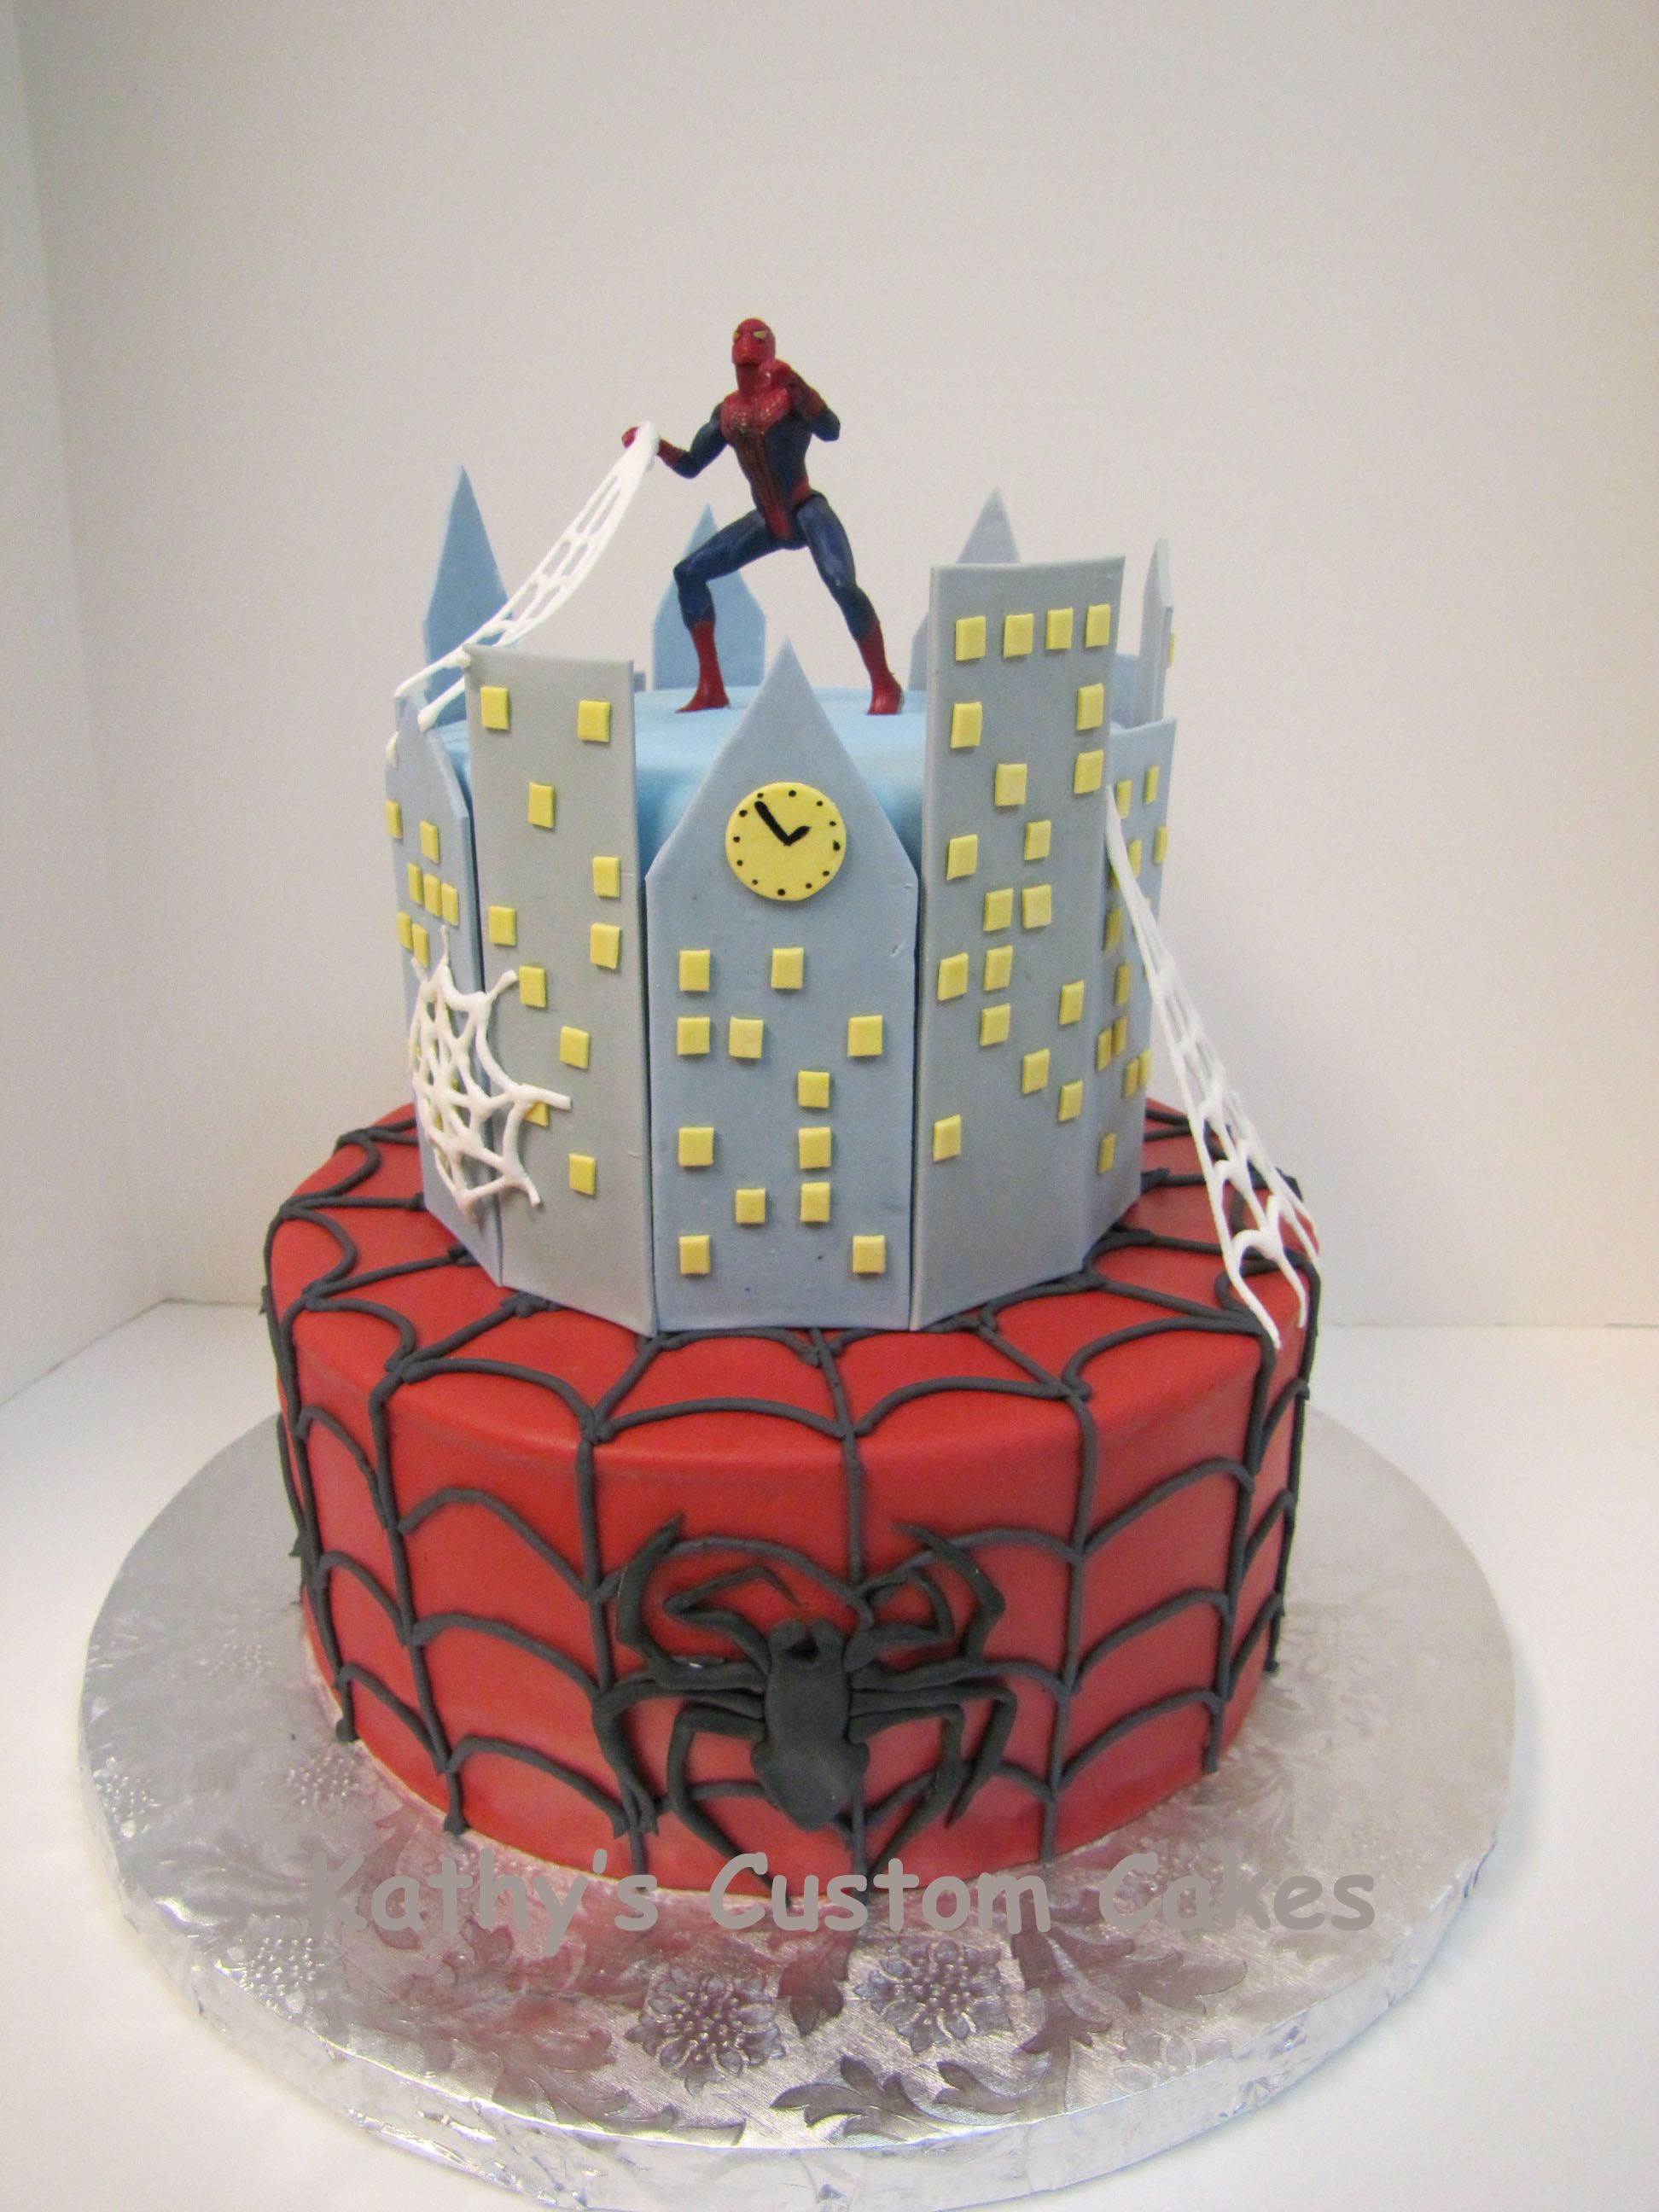 Super Heroes / Cartoon Characters Spiderman cake for a